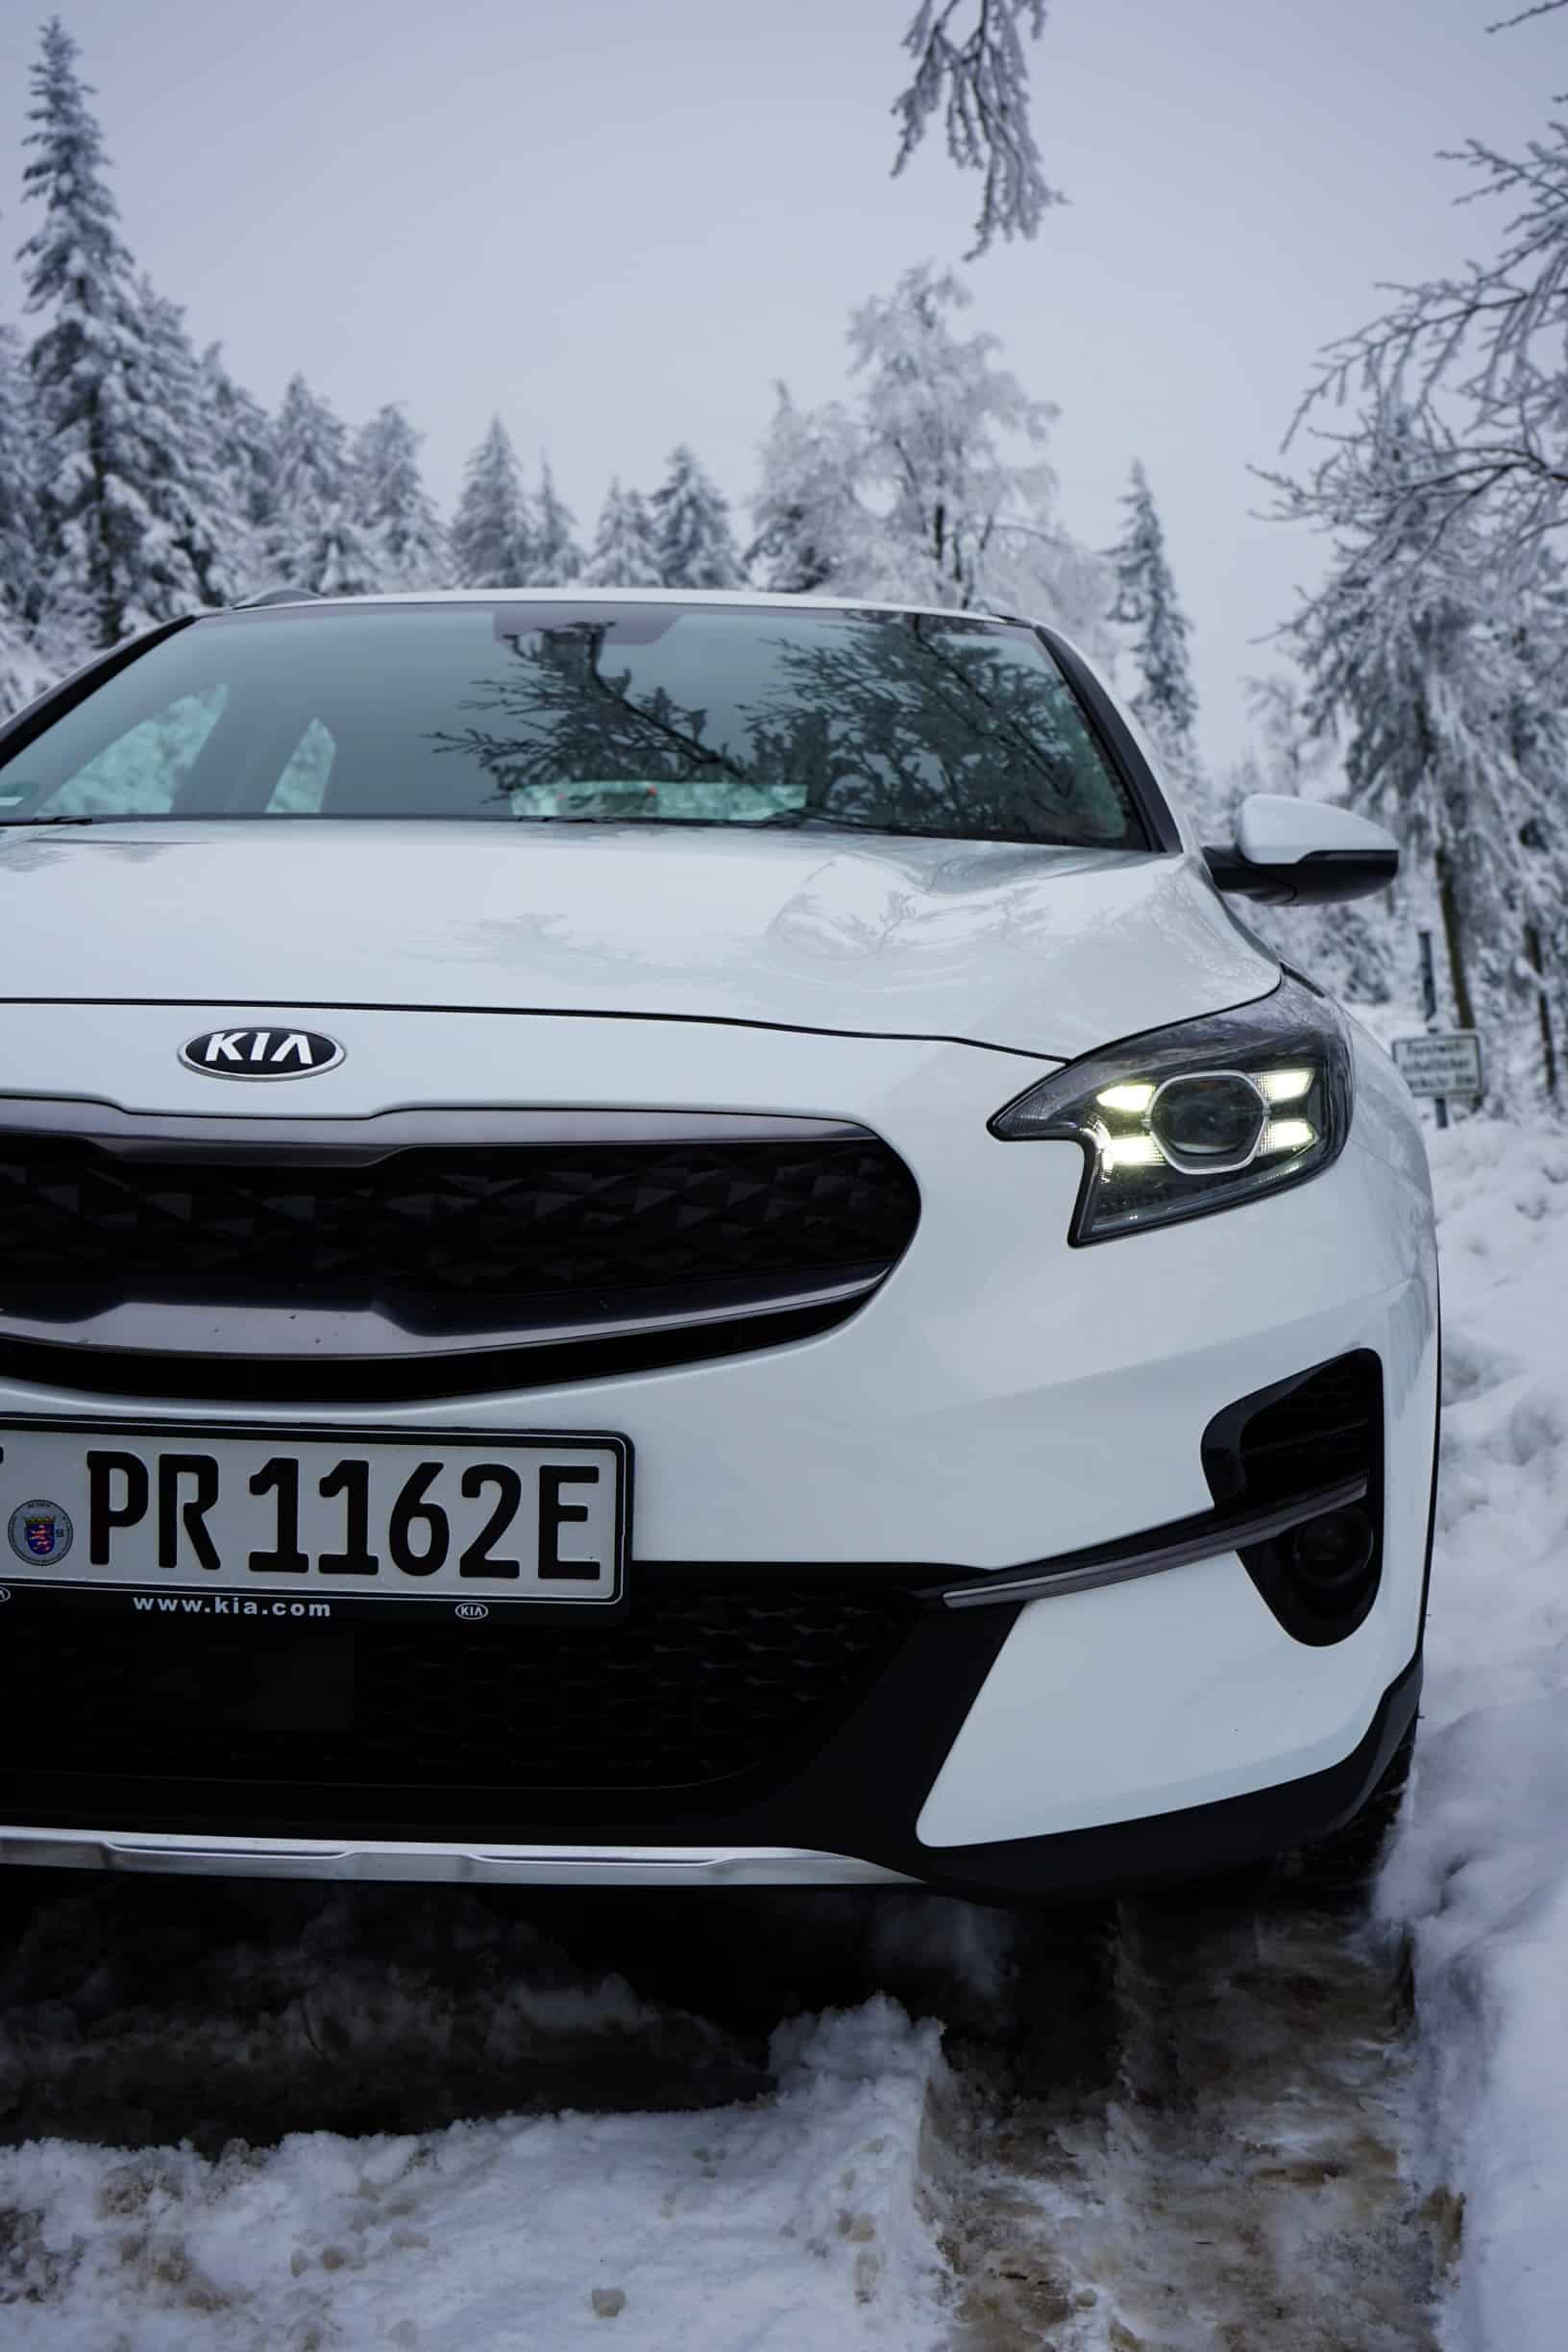 Kia XCeed Plug-in-Hybrid (2021) - Das schönste Crossover Coupé? - Test I Review I POV